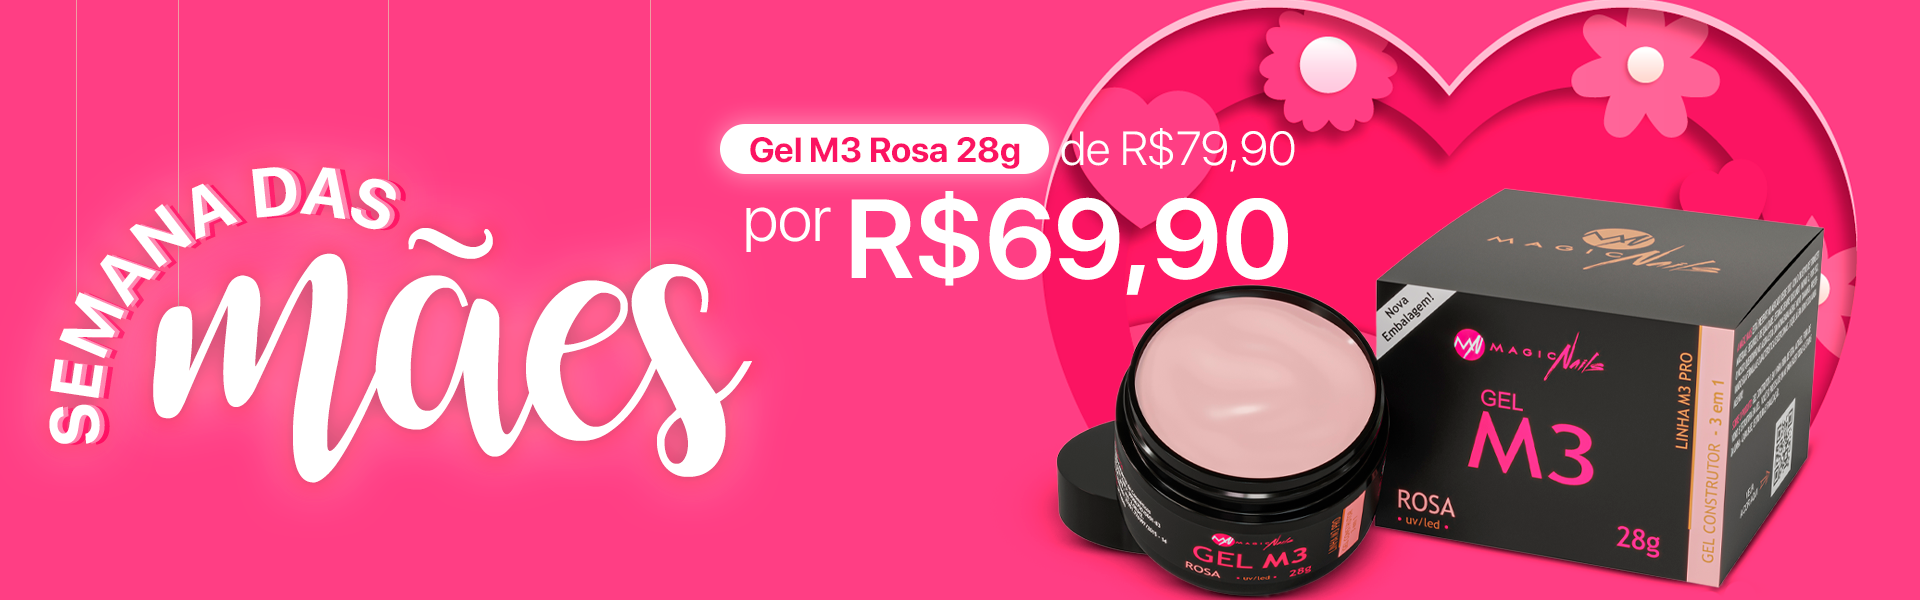 Semana das mães Magic Nails Gel M3 28g